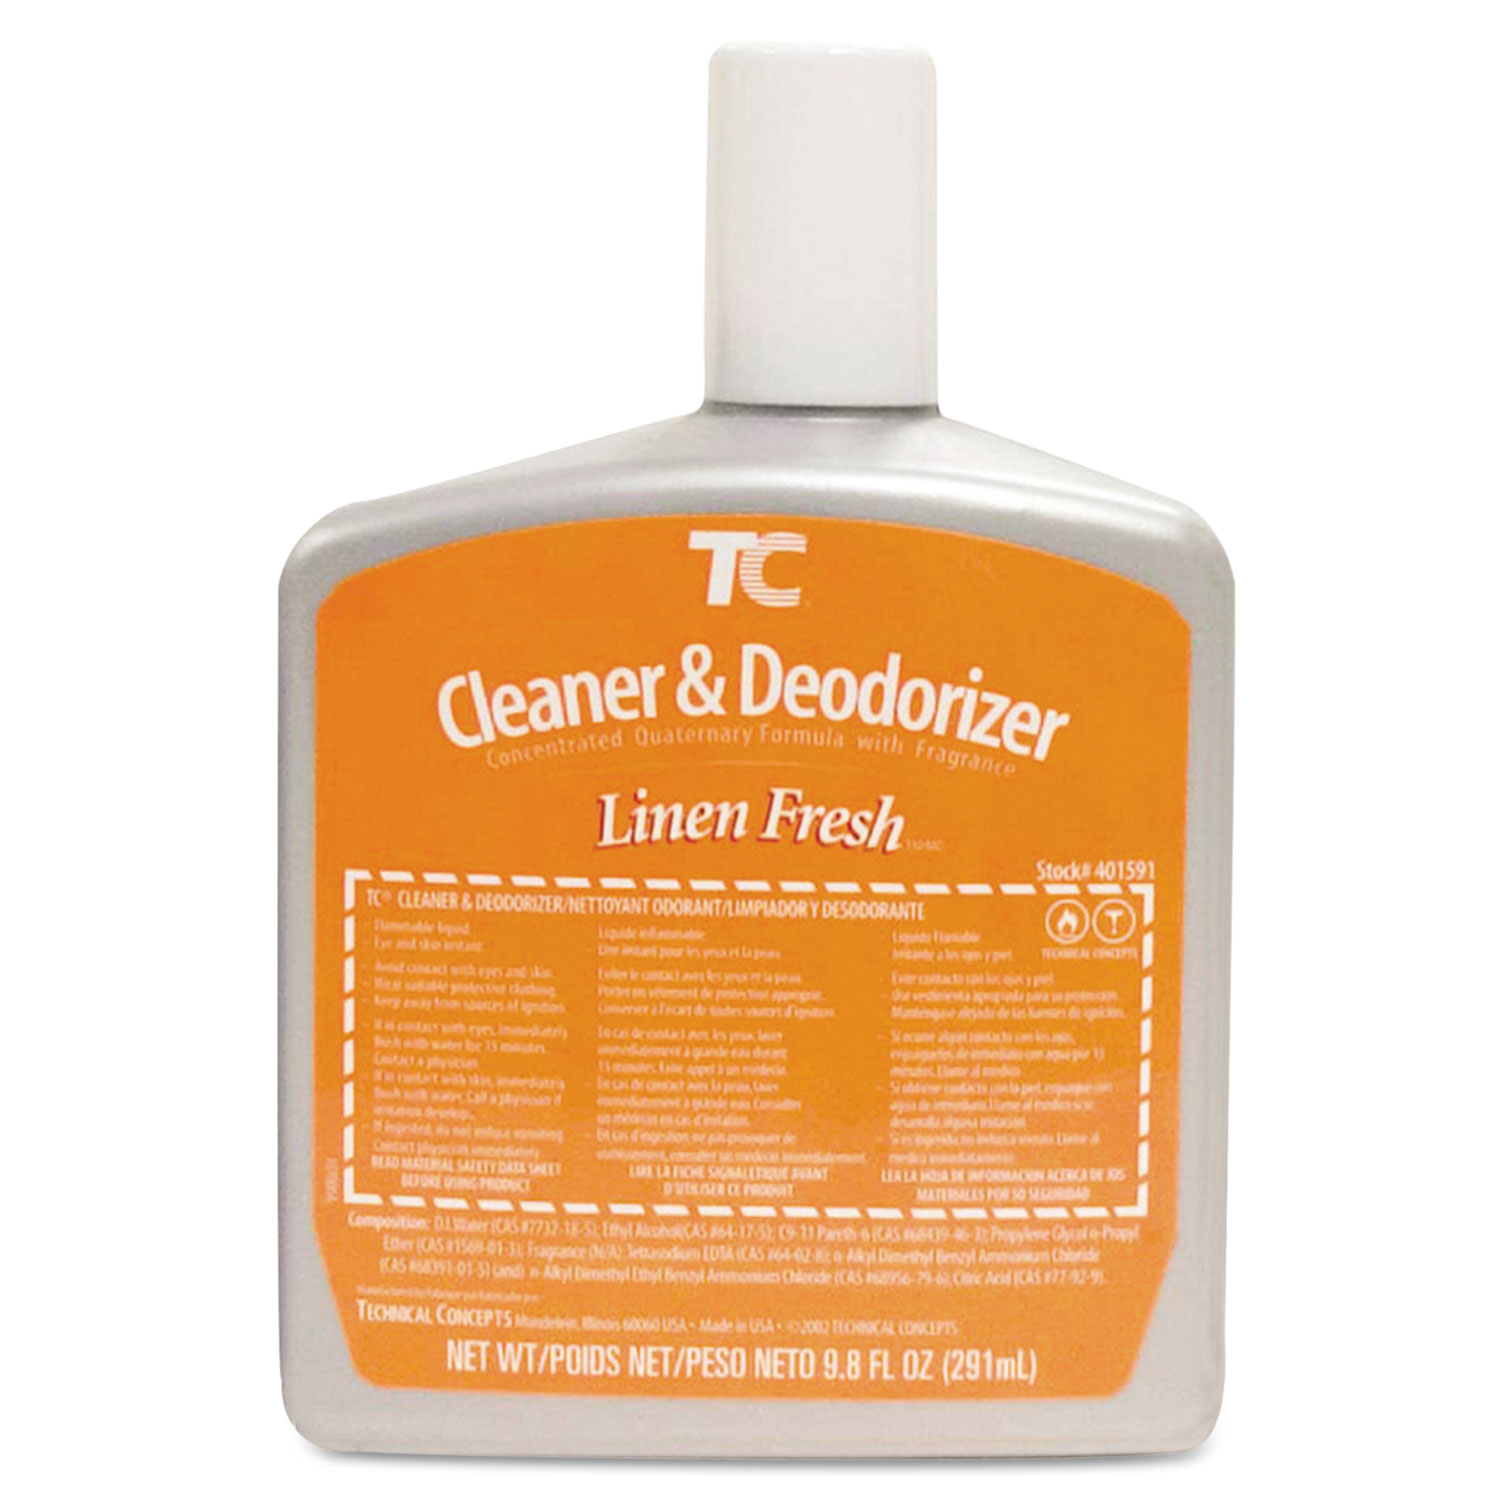 Discover Tc Autoclean Toilet Cleaner Deodorizer Refill And Other Cleaners Detergents